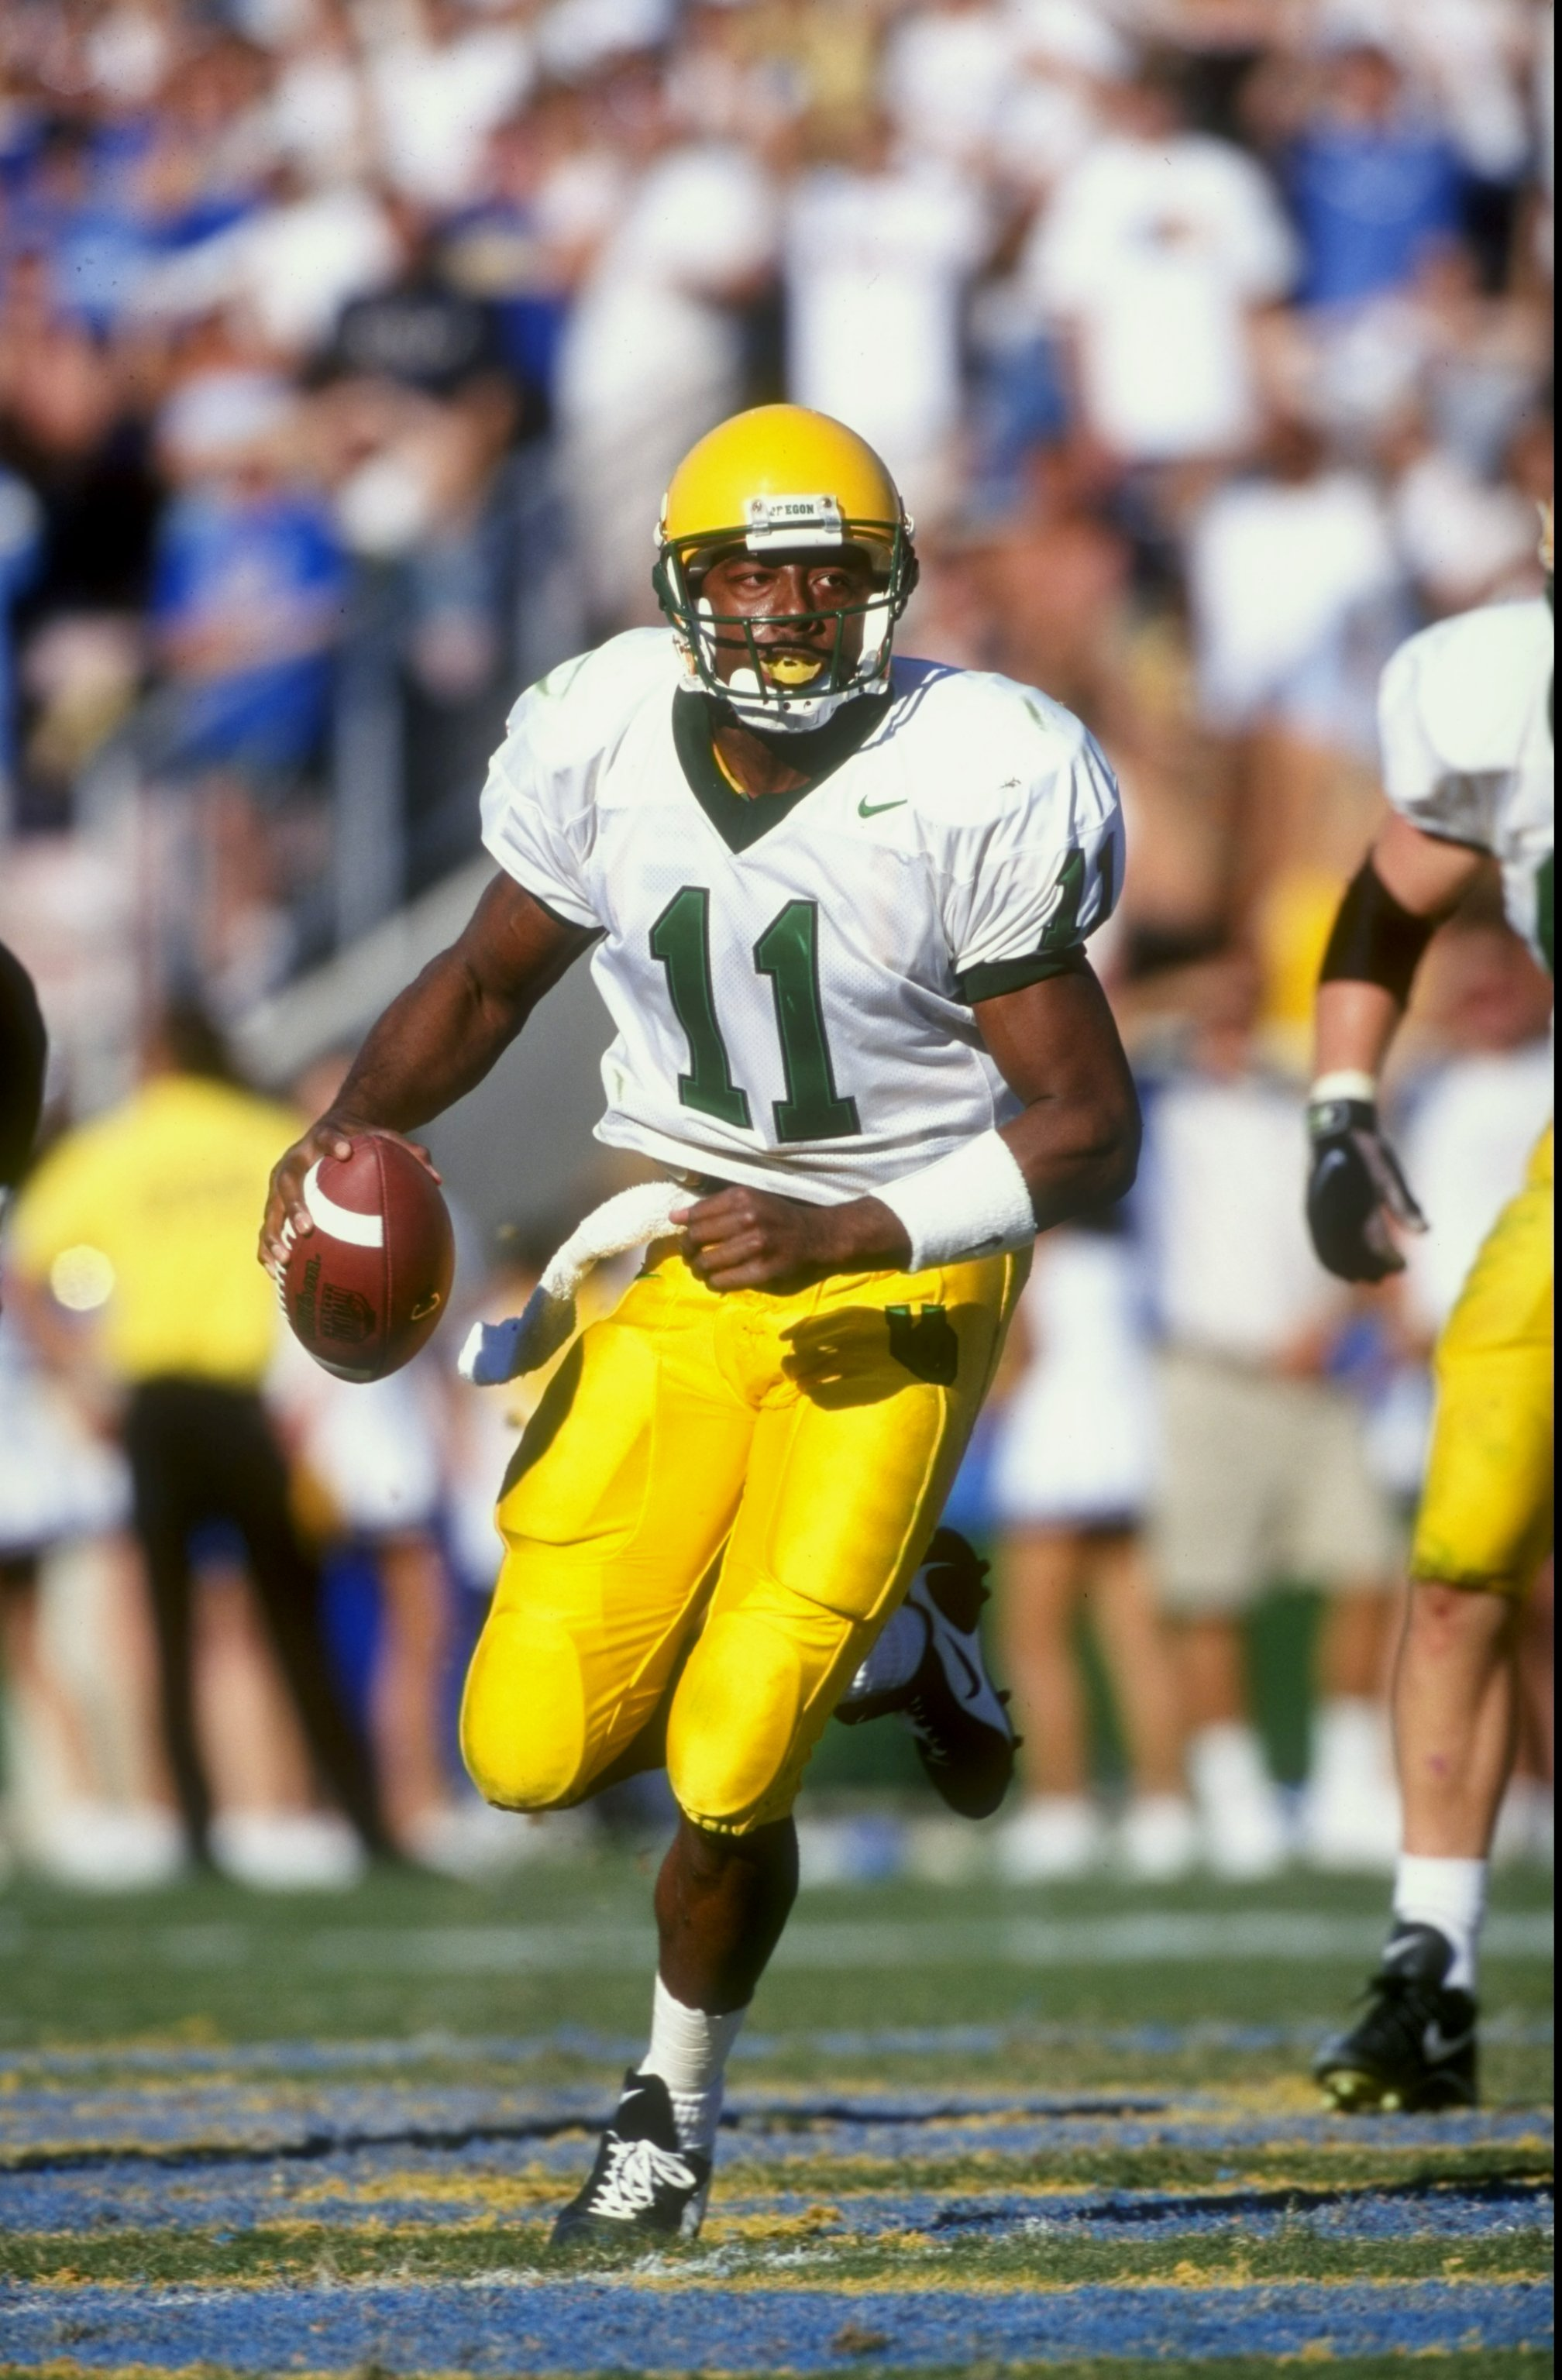 17 Oct 1998: Quarterback Akili Smith #11 of the Oregon Ducks runs during the game against the UCLA Bruins at the Rose Bowl in Pasadena, California. The UCLA defeated the Ducks 41-38. Mandatory Credit: Tom Hauck  /Allsport